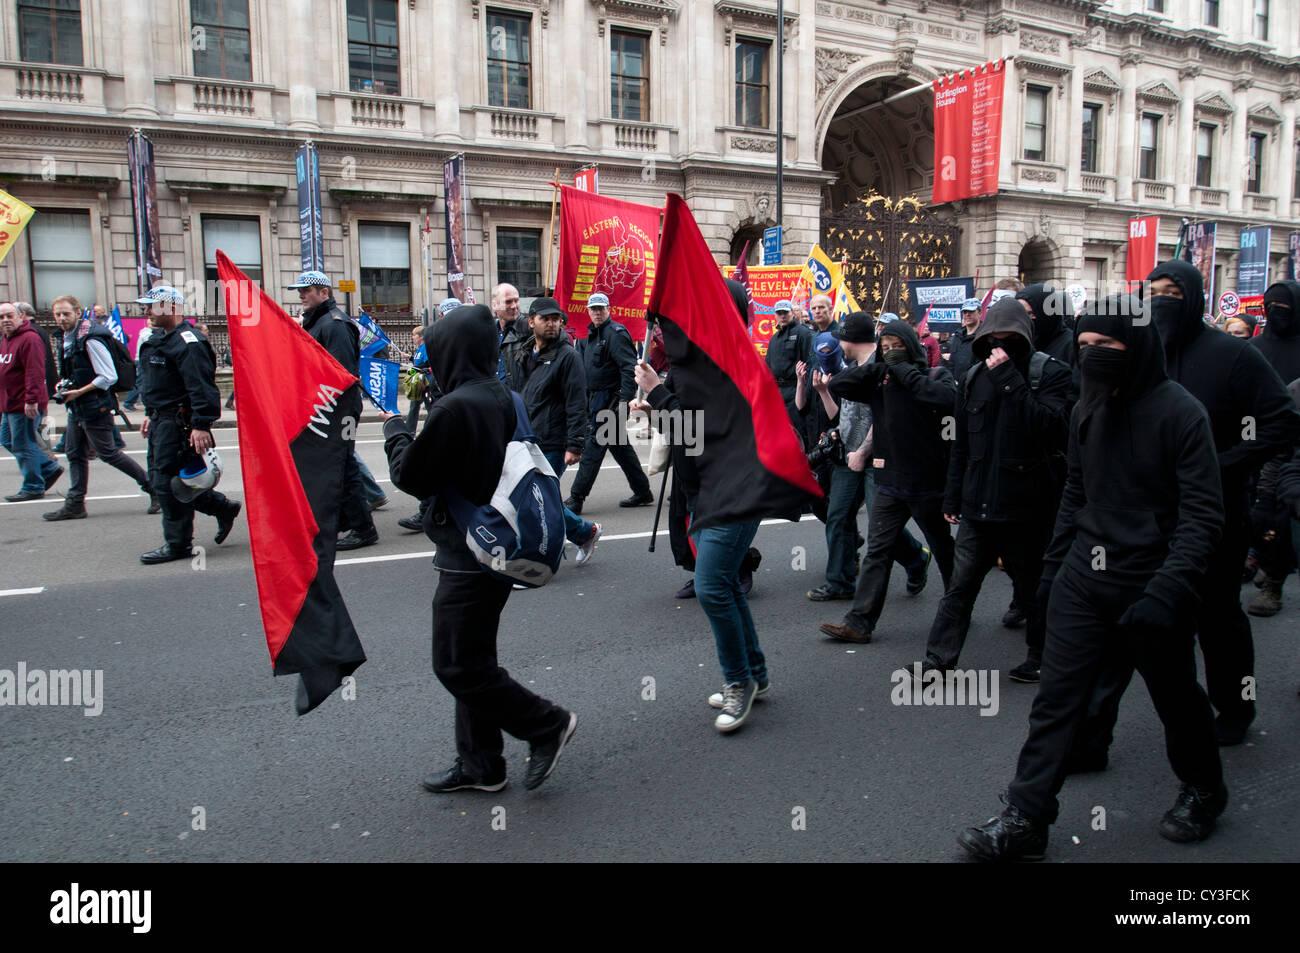 TUC March -- 20 October 2012 -- Protesters marched from Embankment to Hyde Park. Anarchists are amongst the march. - Stock Image